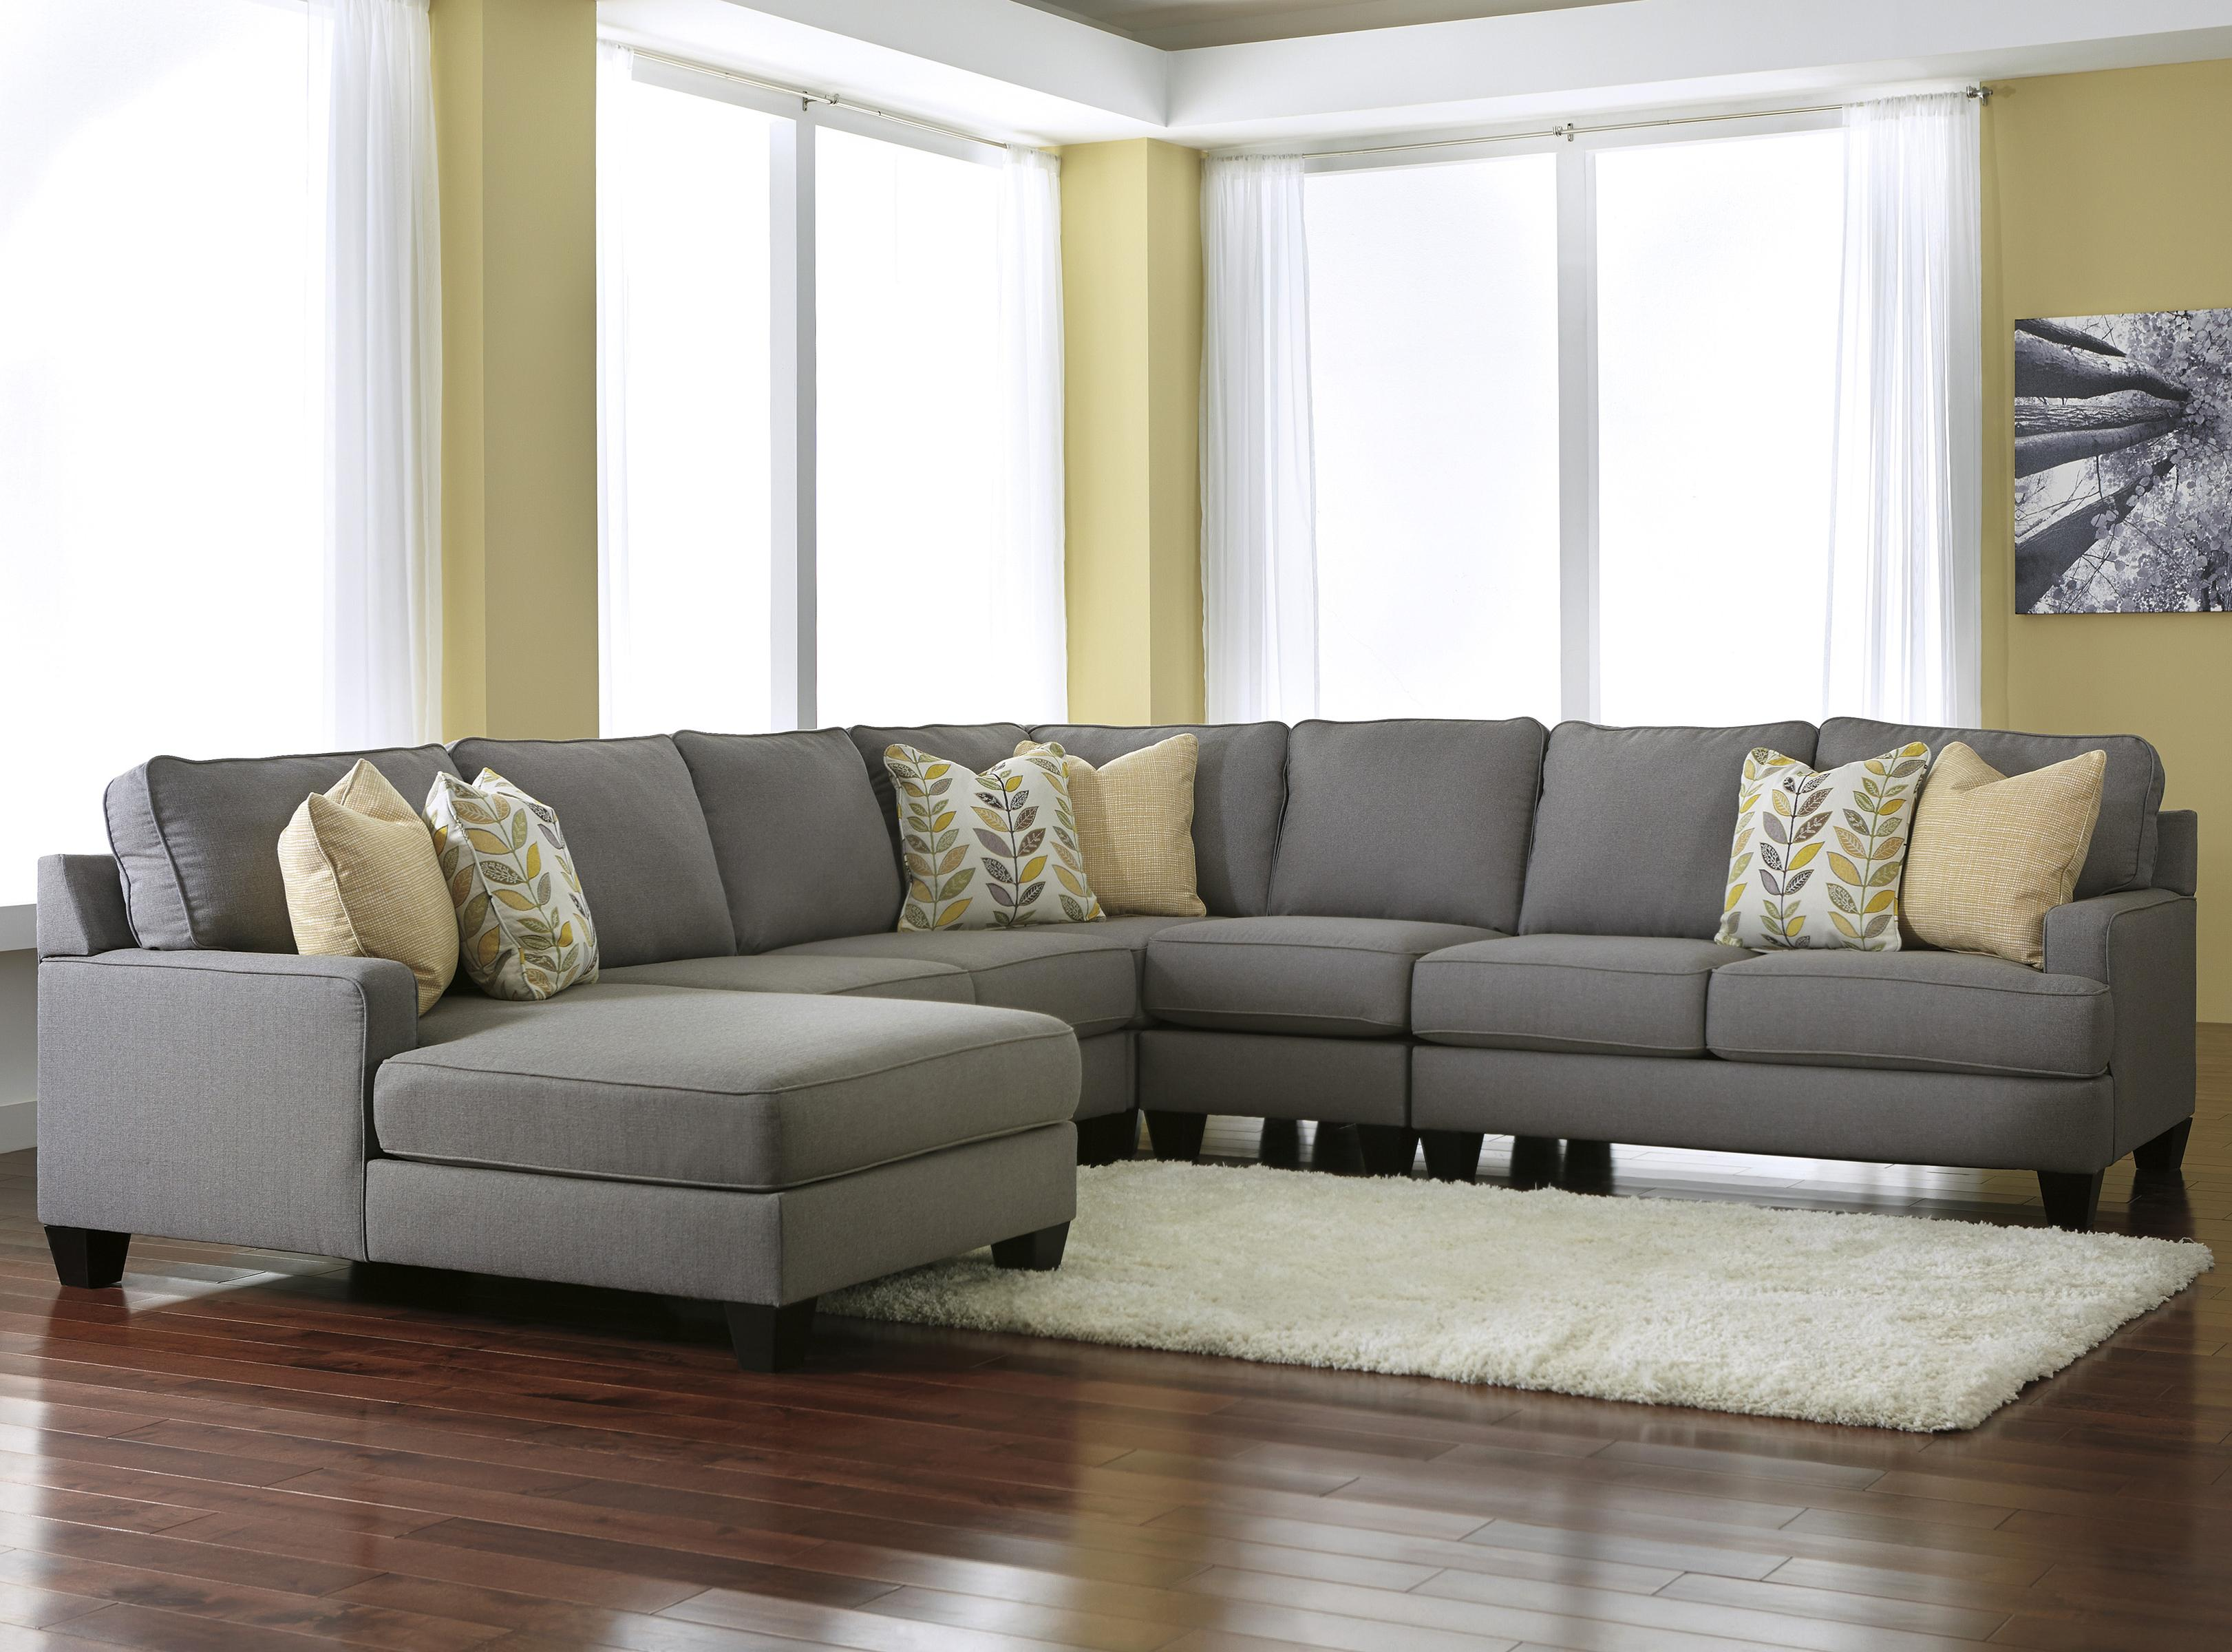 Signature Design by Ashley Chamberly - Alloy 5-Piece Sectional Sofa with Left Chaise - Item Number: 2430216+34+77+46+56